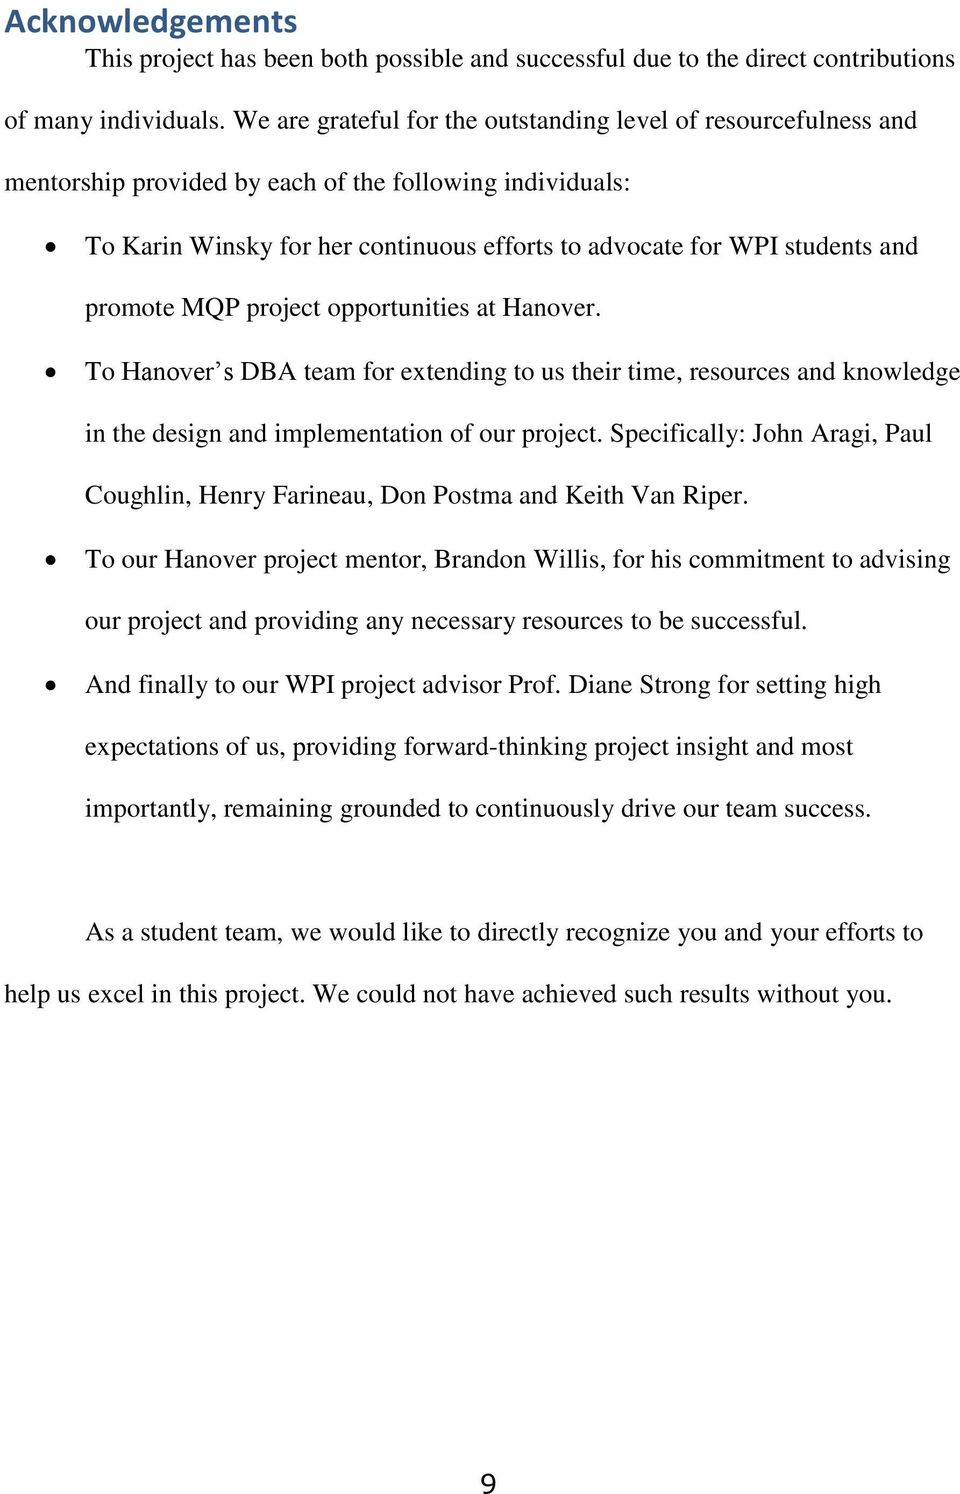 promote MQP project opportunities at Hanover. To Hanover s DBA team for extending to us their time, resources and knowledge in the design and implementation of our project.